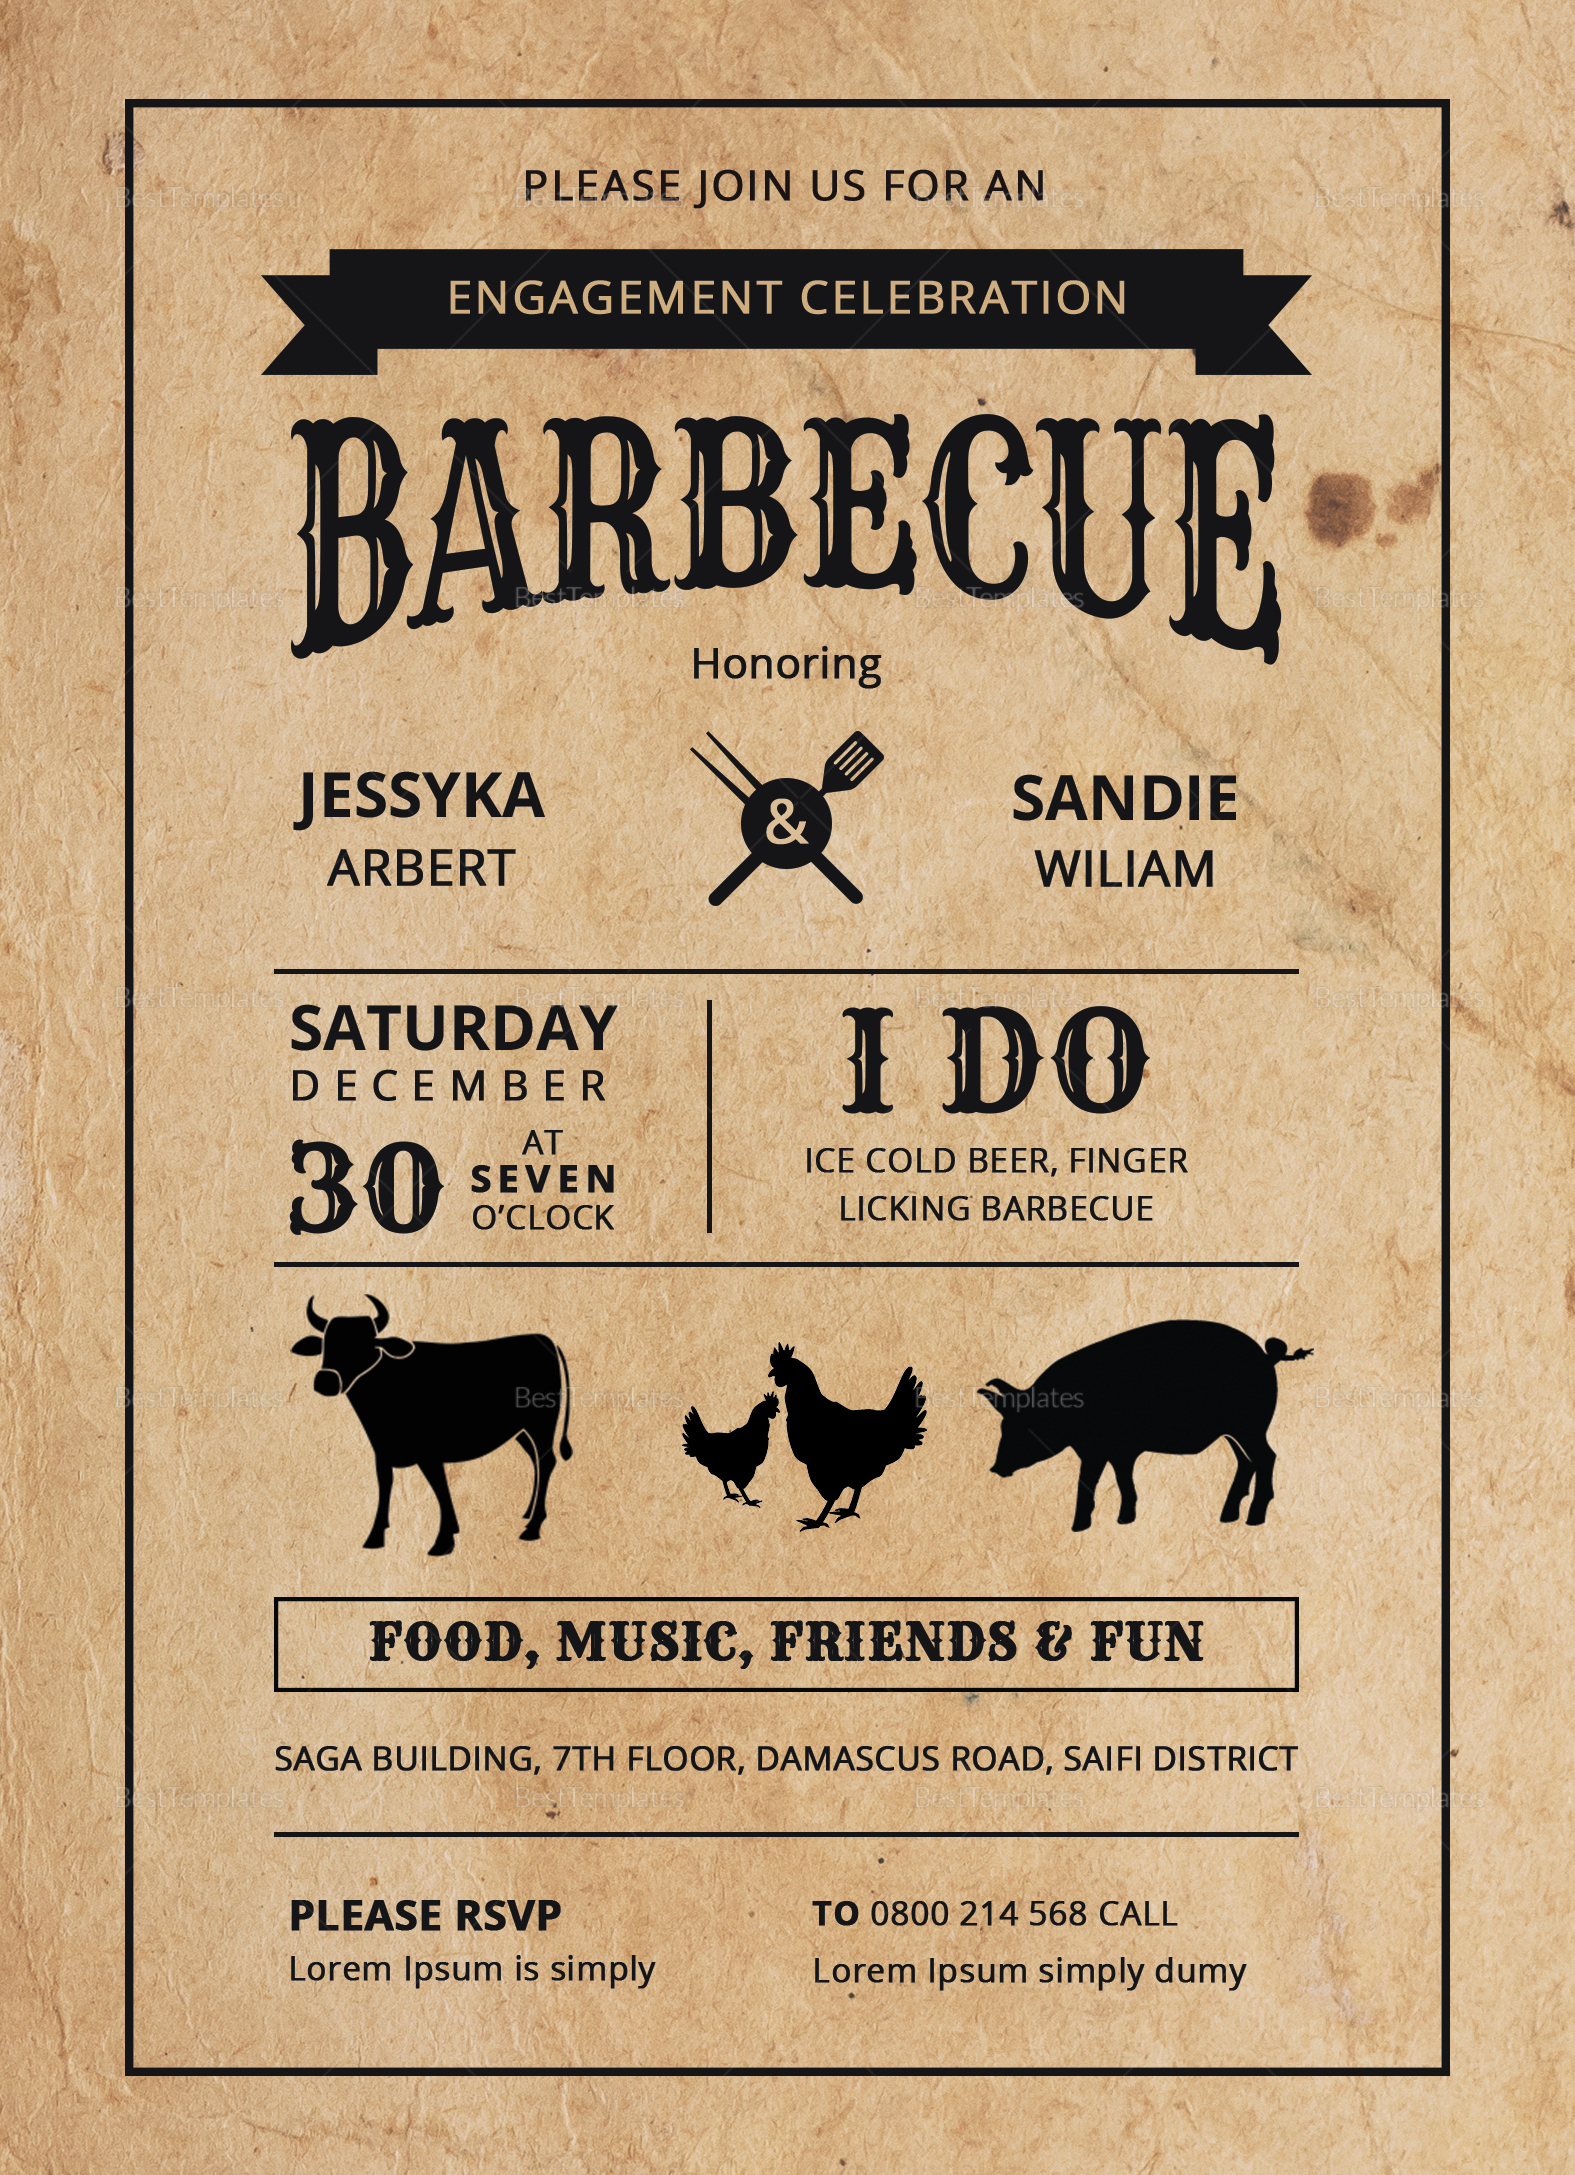 BBQ Engagement Party Invitation Design Template